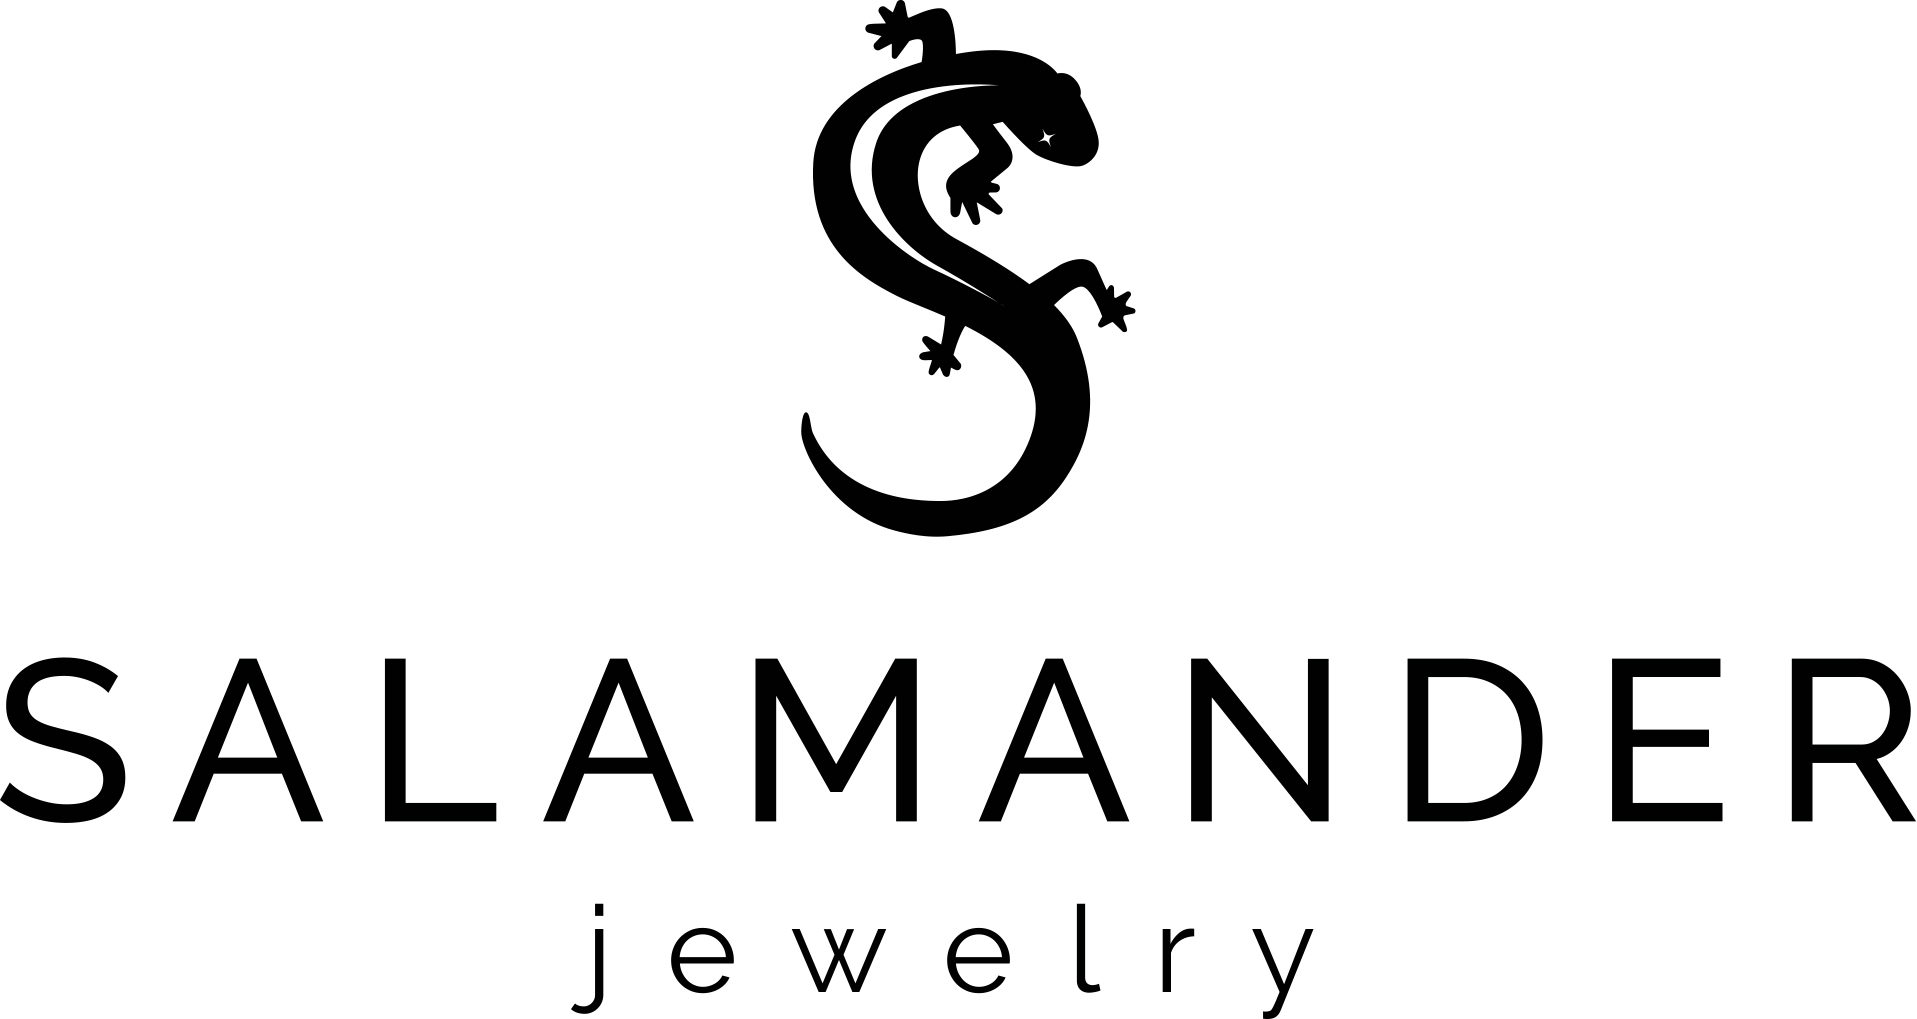 Thailand's Popular Salamander Jewelry Introduces PVD Coating Services